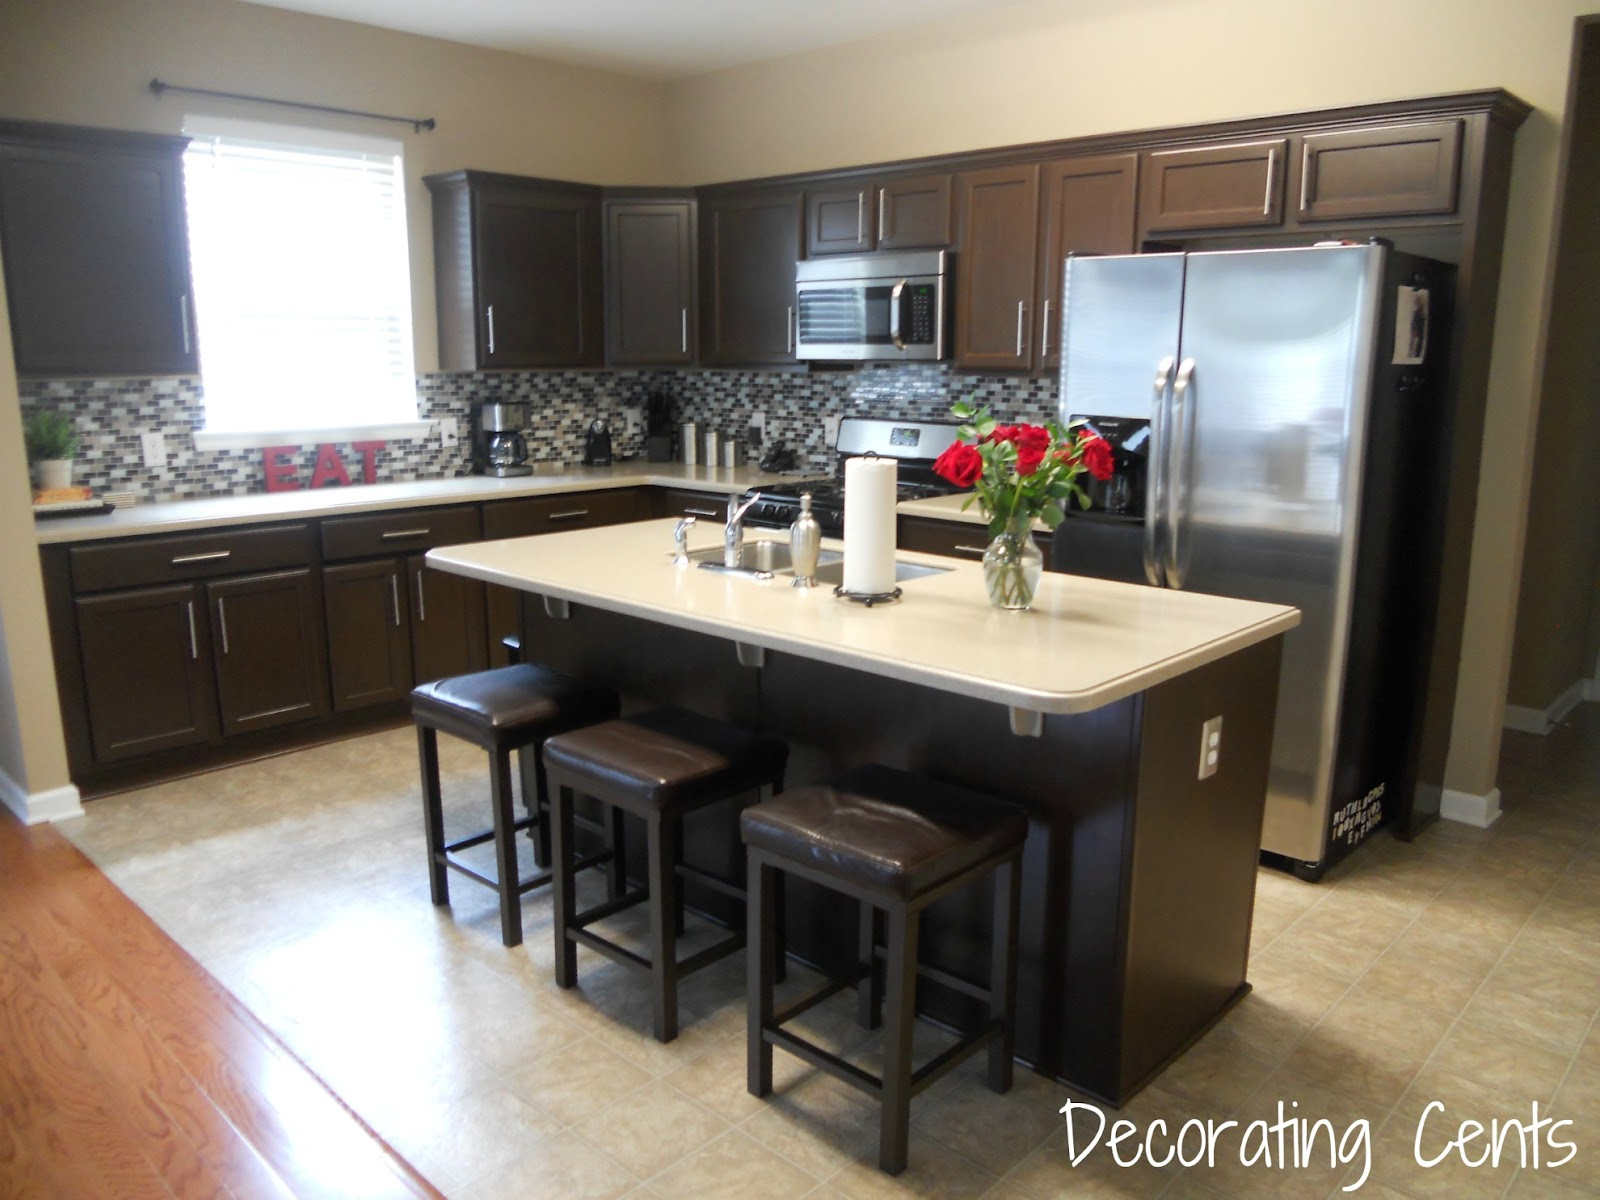 Decorating Cents Kitchen Cabinets Revealed